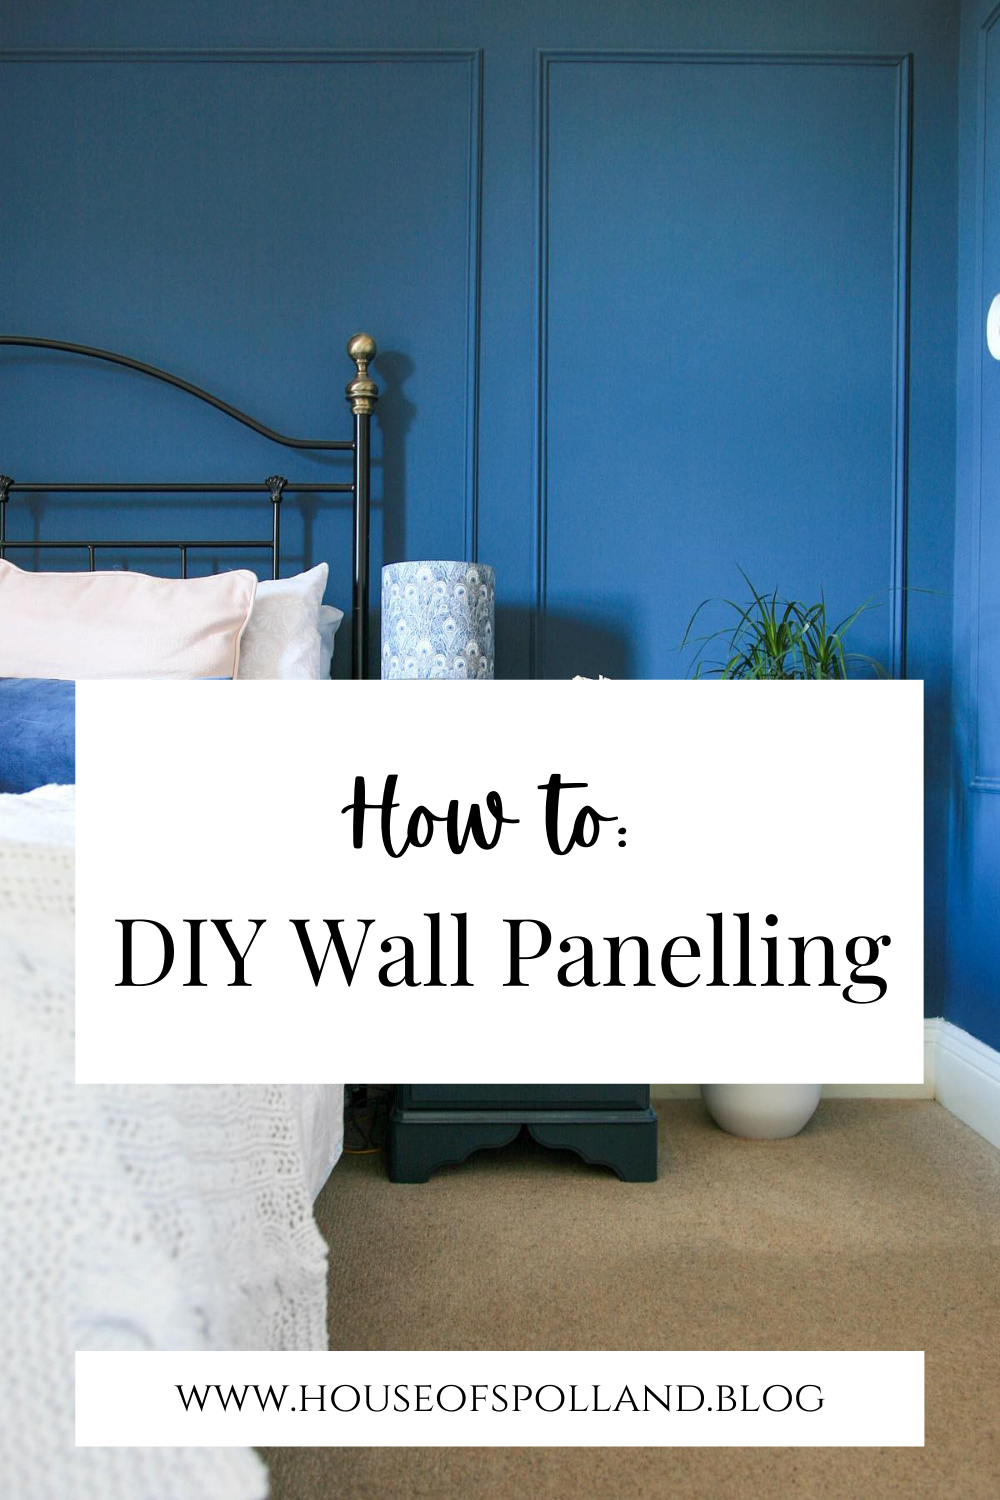 Wall Panelling Tutorial